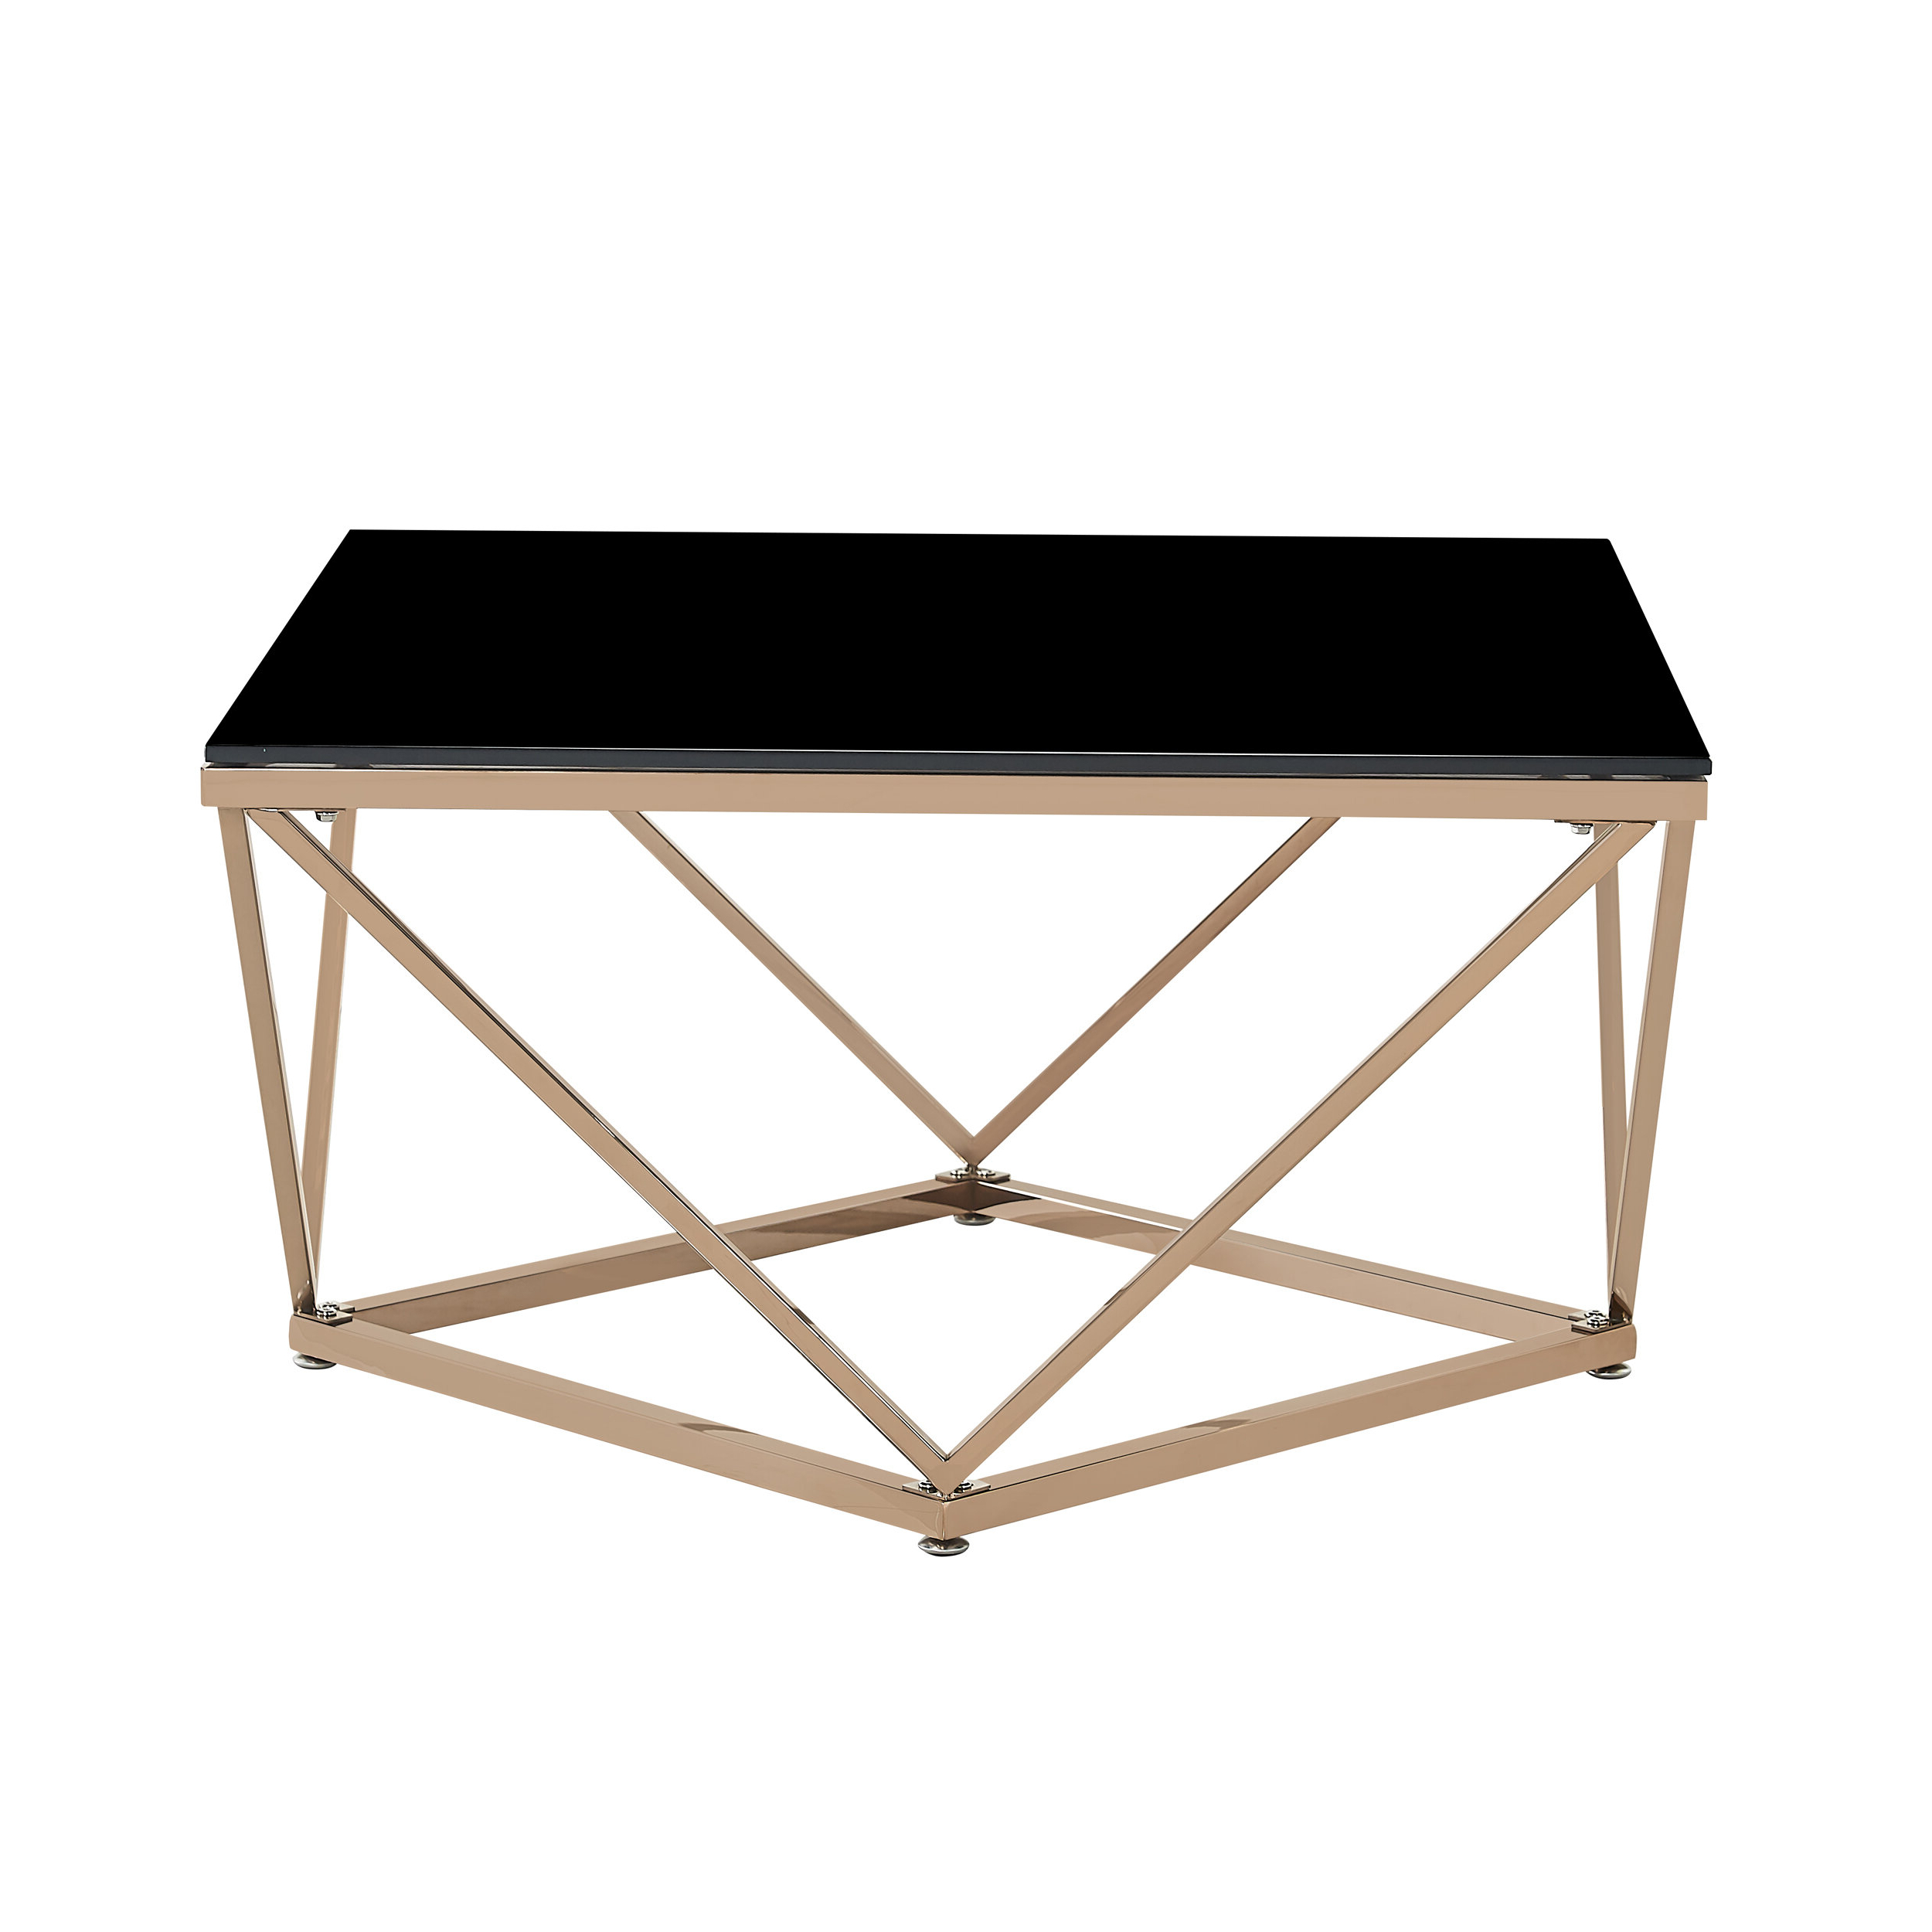 Favorite Glossy White Hollow Core Tempered Glass Cocktail Tables With Regard To Mote Modern Glam Tempered Glass And Stainless Steel Coffee Table With Tray Top (View 18 of 20)